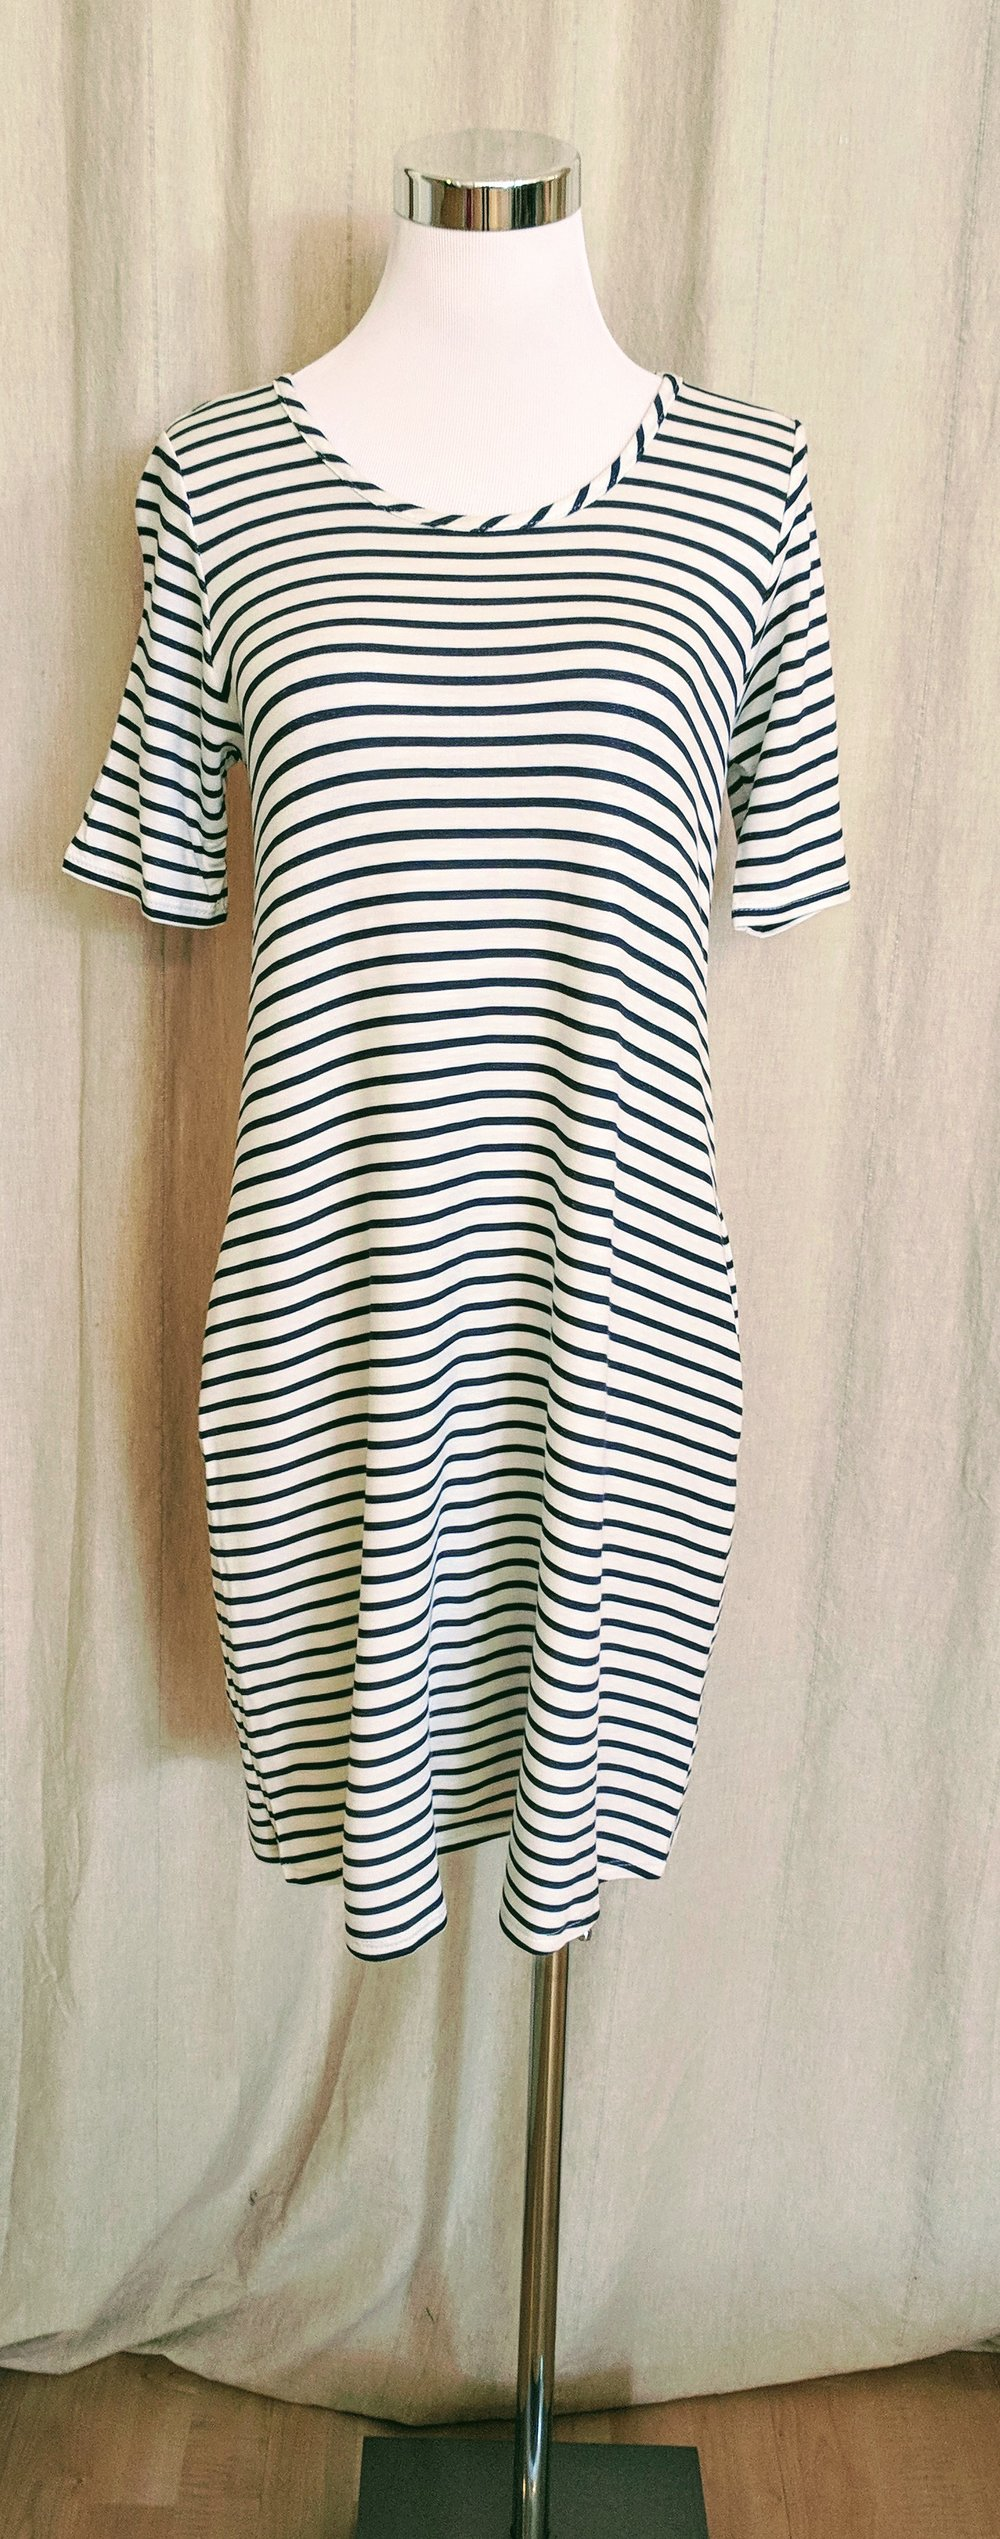 Navy stripe tunic dress with key hole detail on back. $38